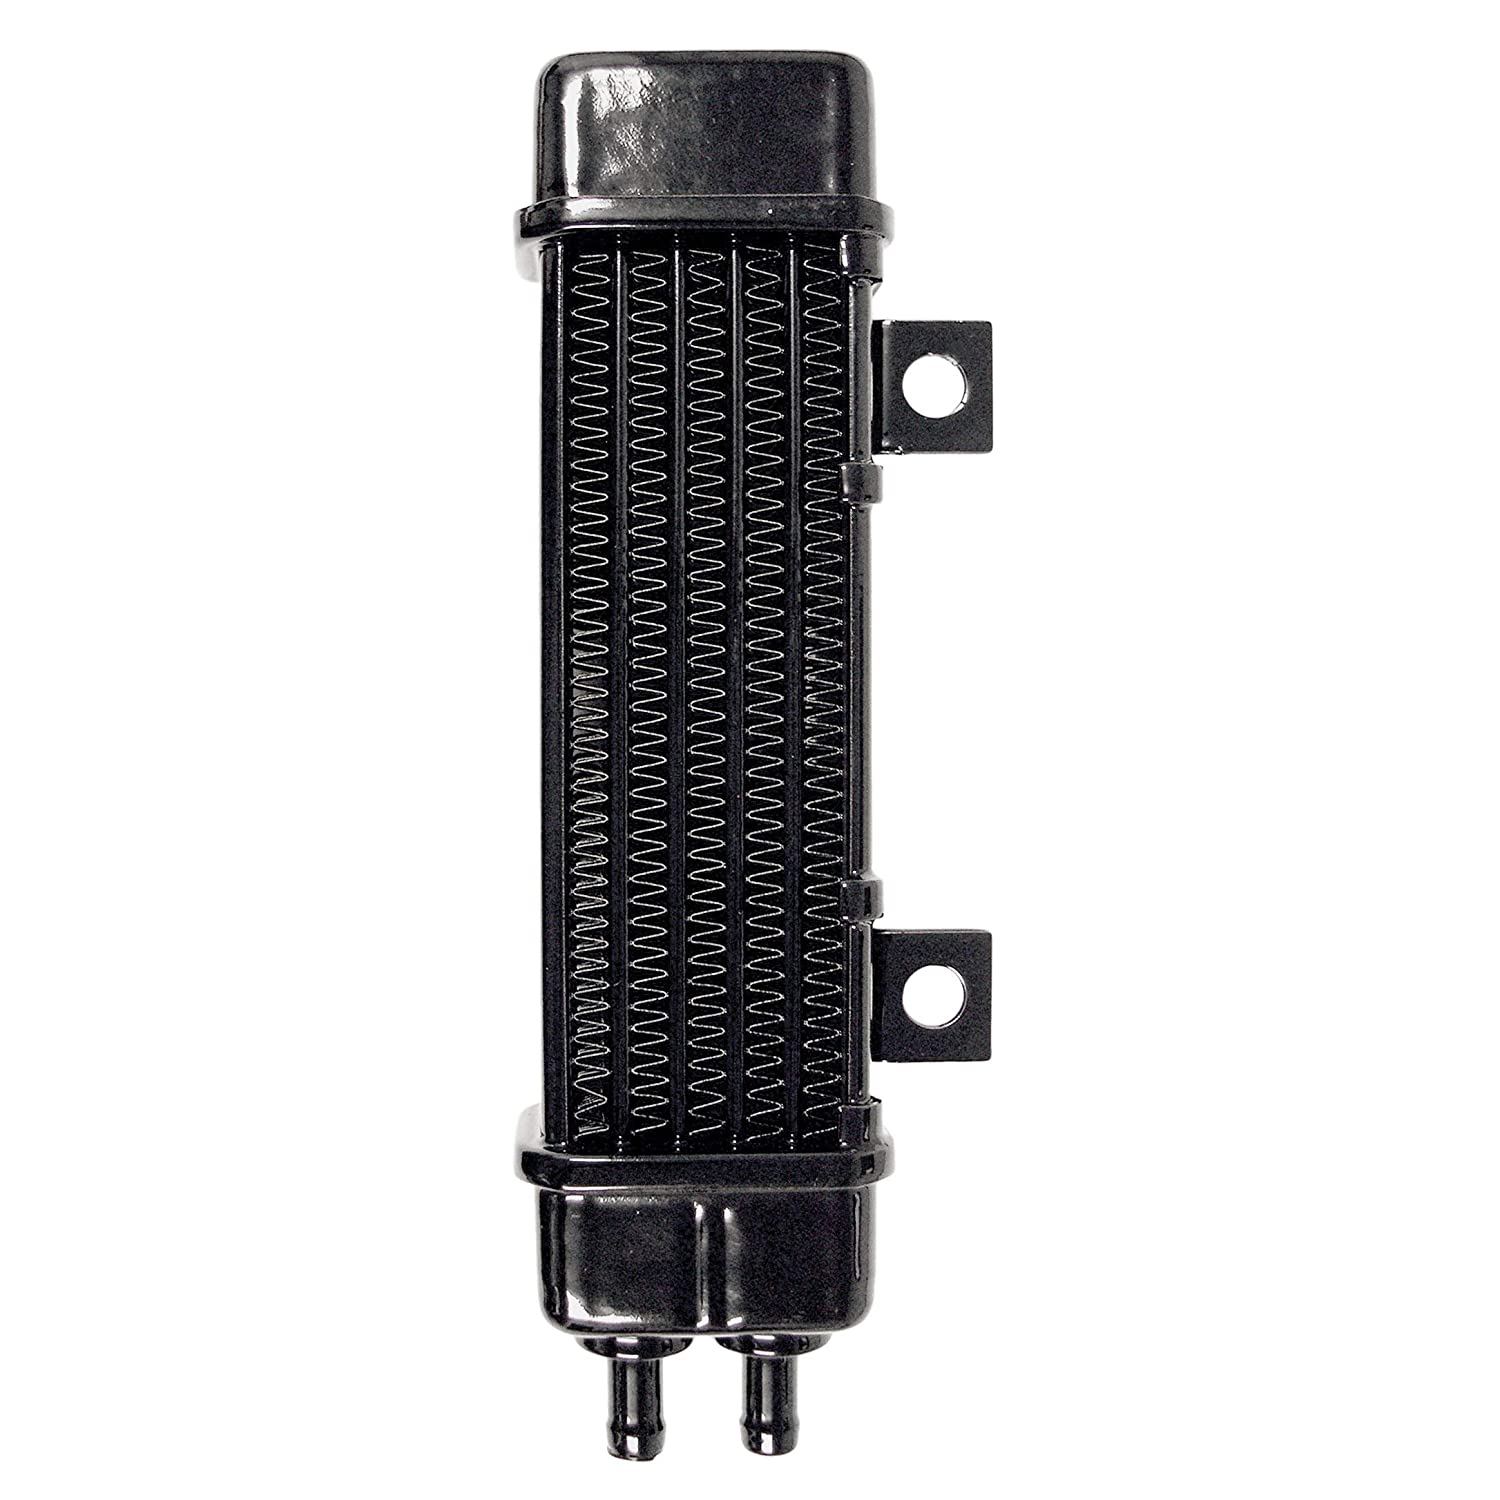 No Fan Jagg 3160 Universal 10 Row Oil Cooler with 2 Mounting Tabs and 2 Mounting Bosses